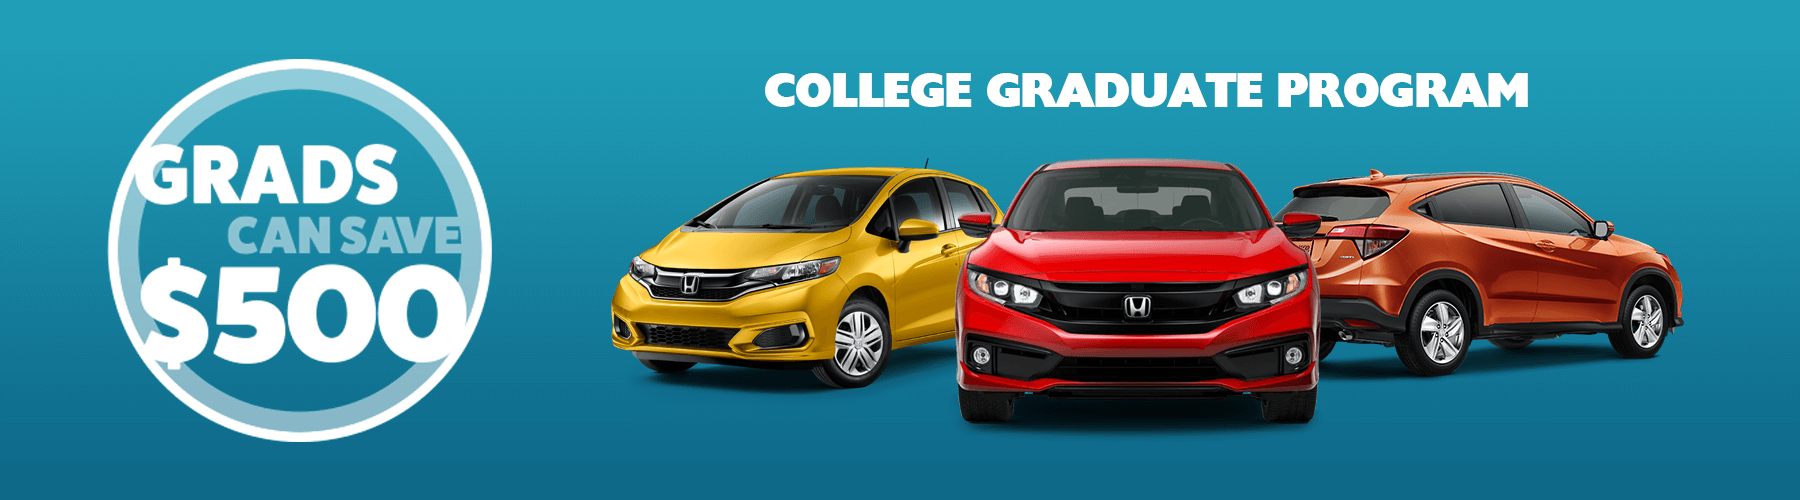 2019 Honda College Graduate Program Slider